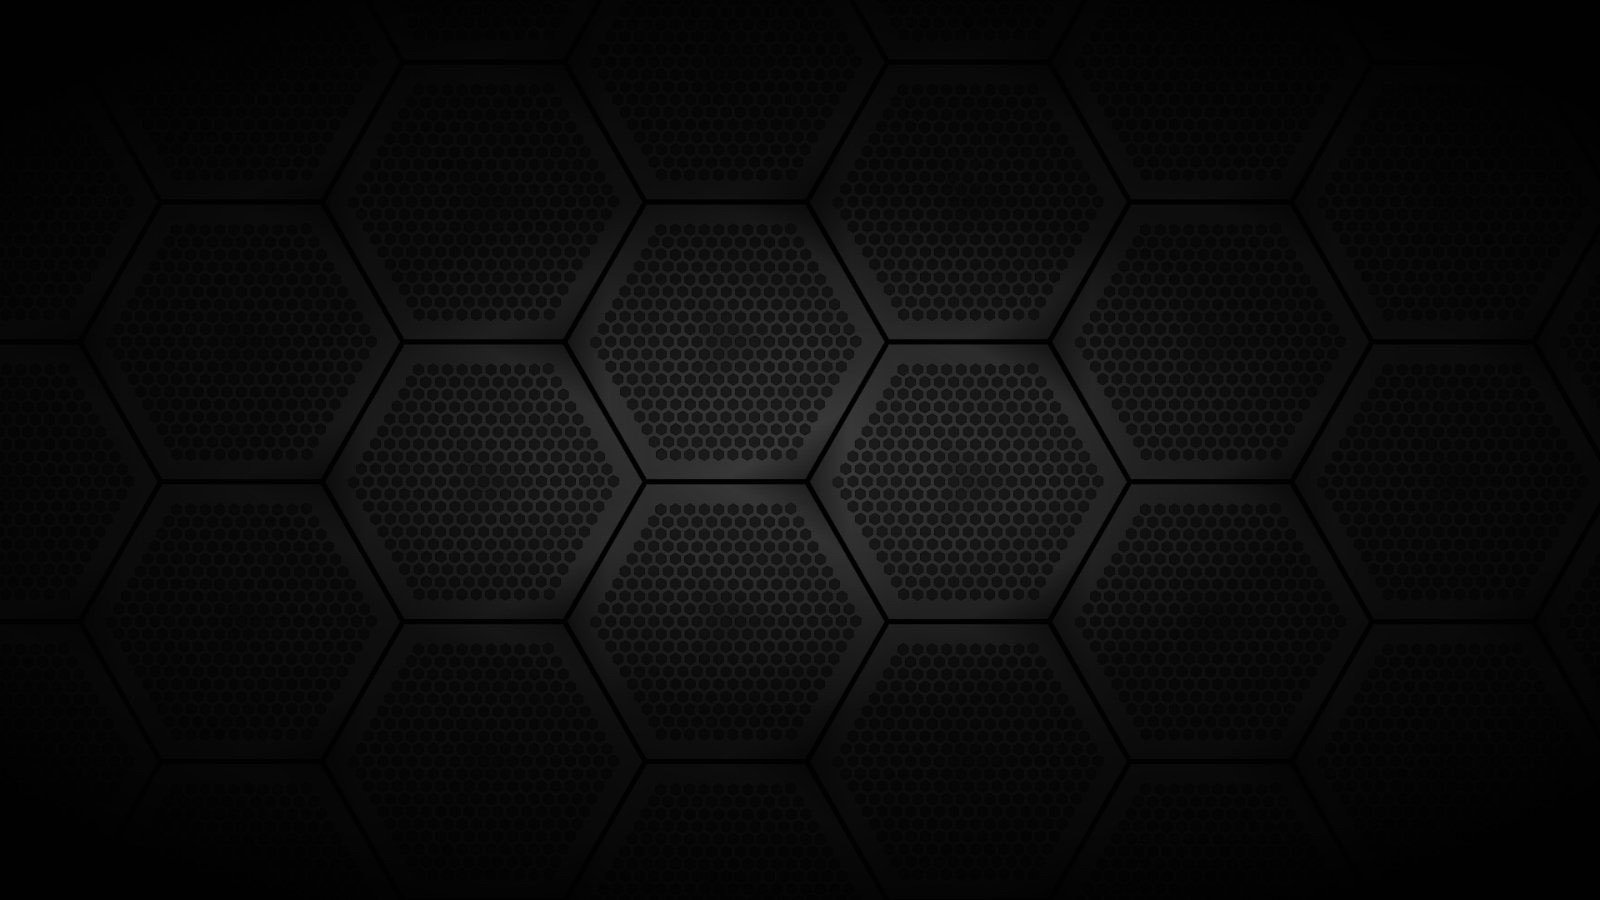 19 Black Abstract Background Designs On Wallpapersafari